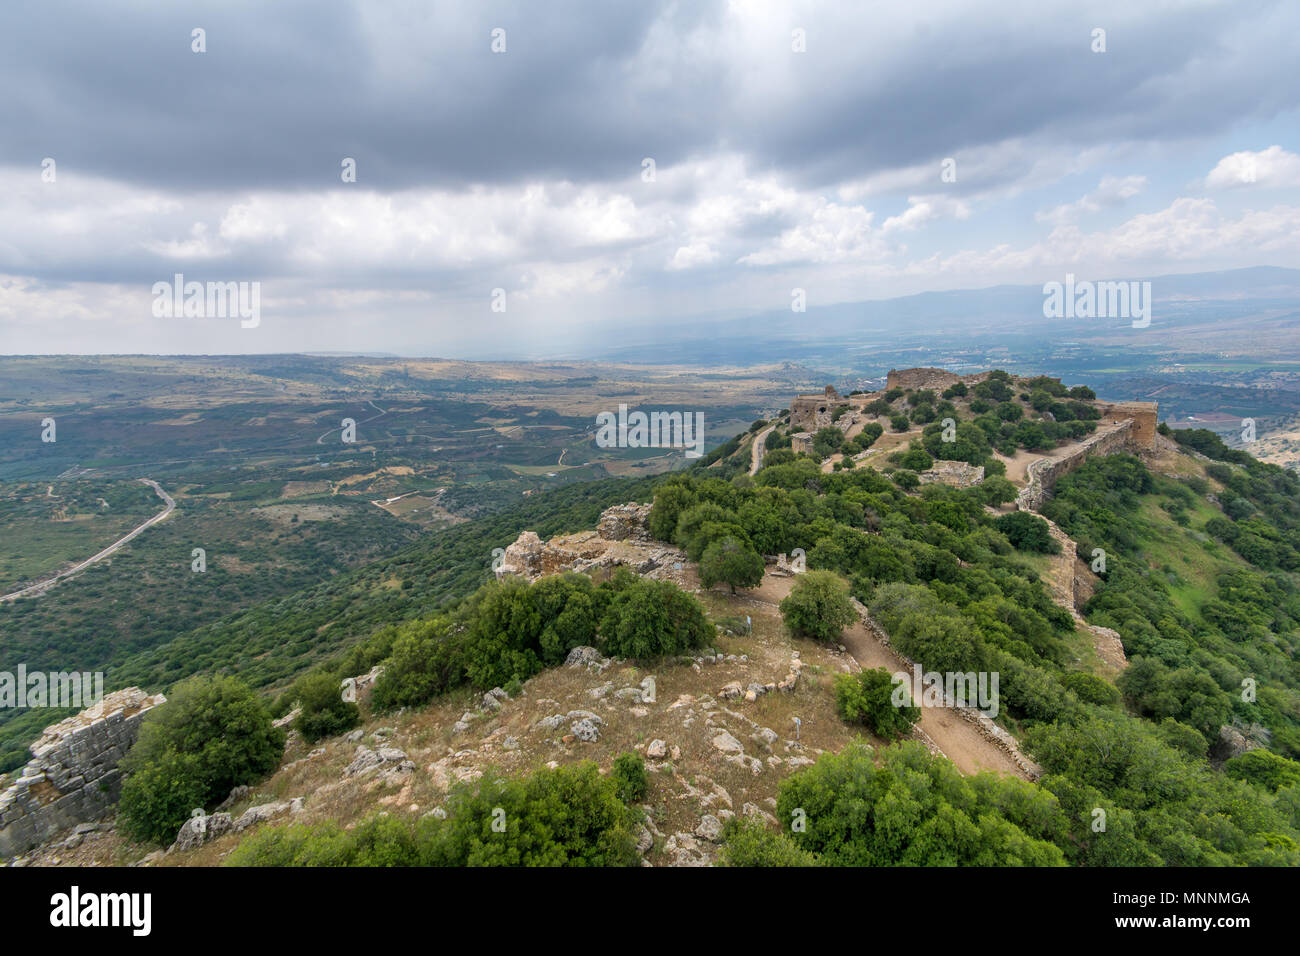 View of Hula Valley landscape and the Nimrod Fortress, a 13th century Muslim castle in northern Israel, now a national park - Stock Image